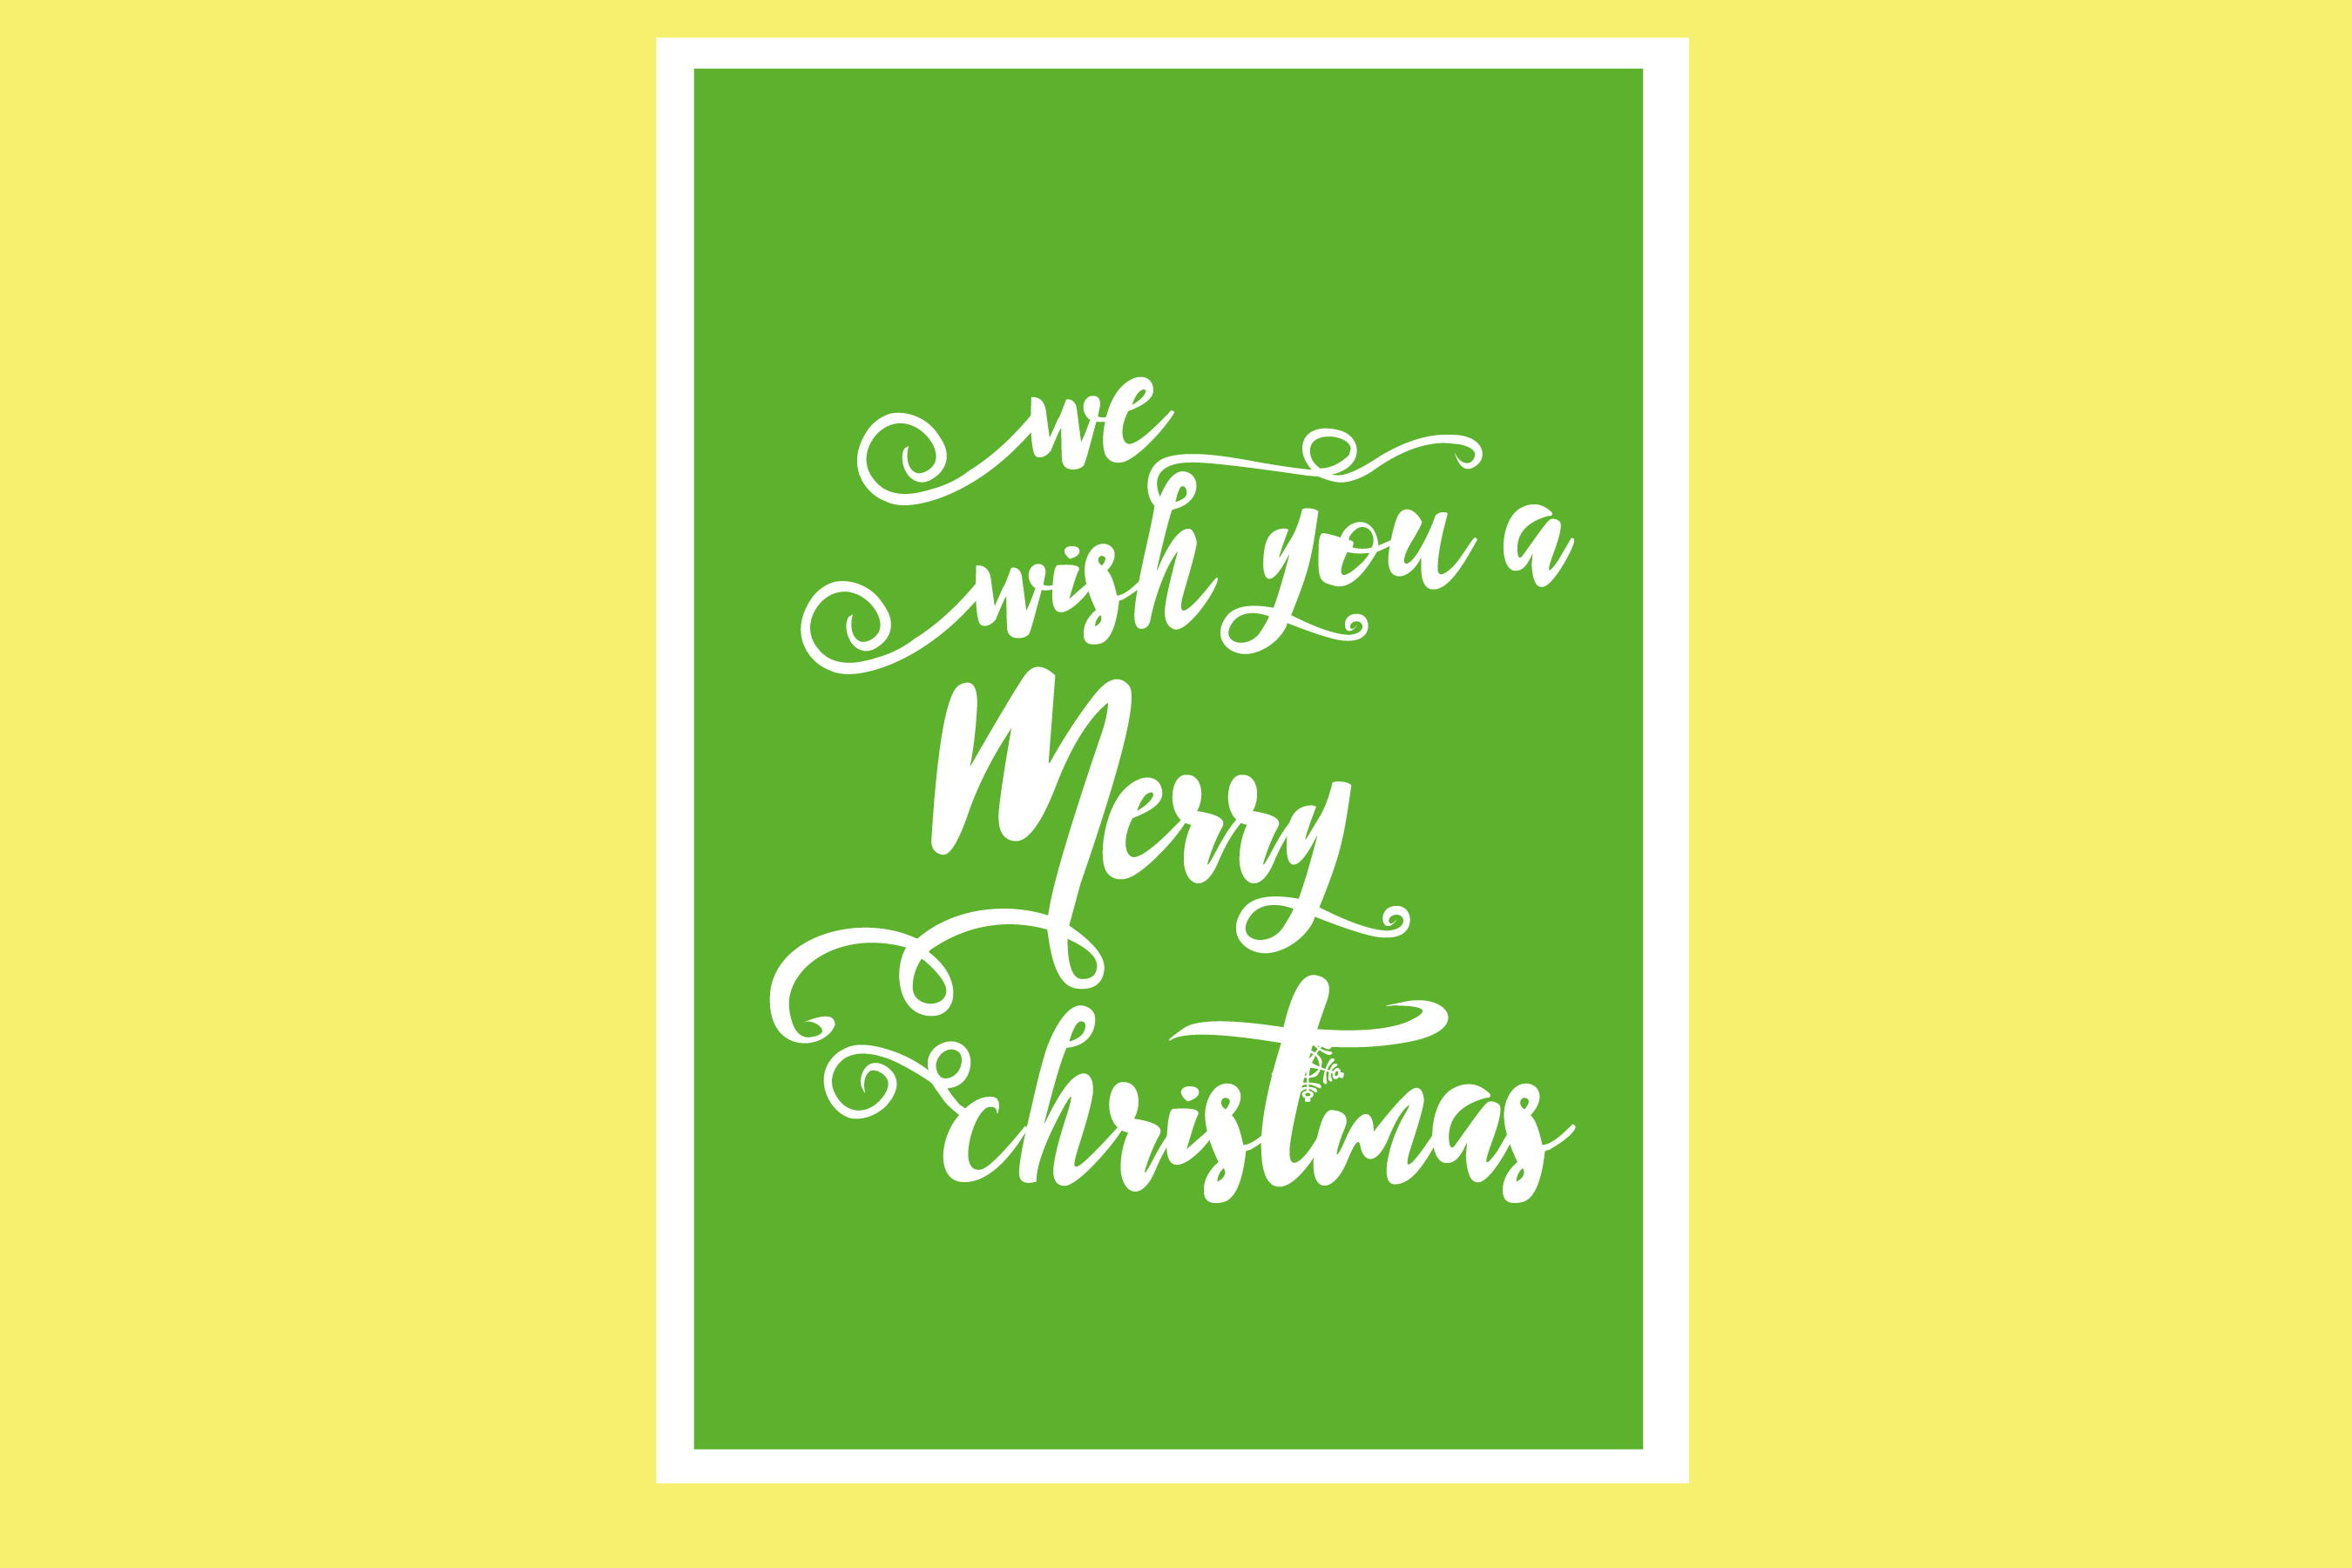 AA25-Christmas Greetings cards 6 Designs - SVG Bundle example image 6